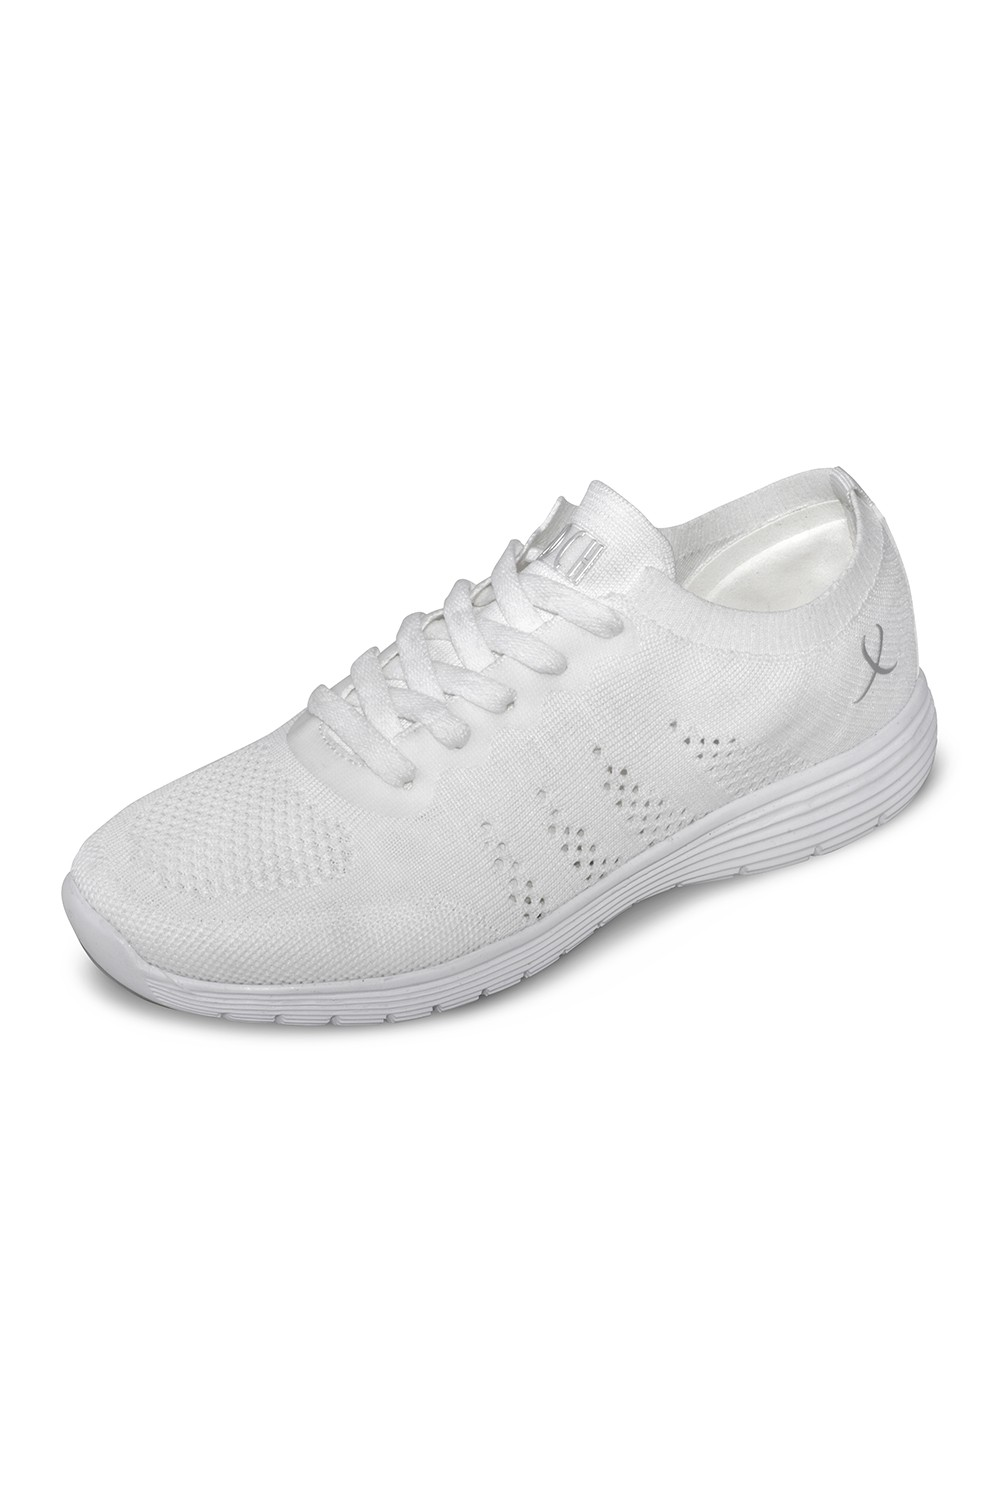 Omnia Women's Dance Sneakers